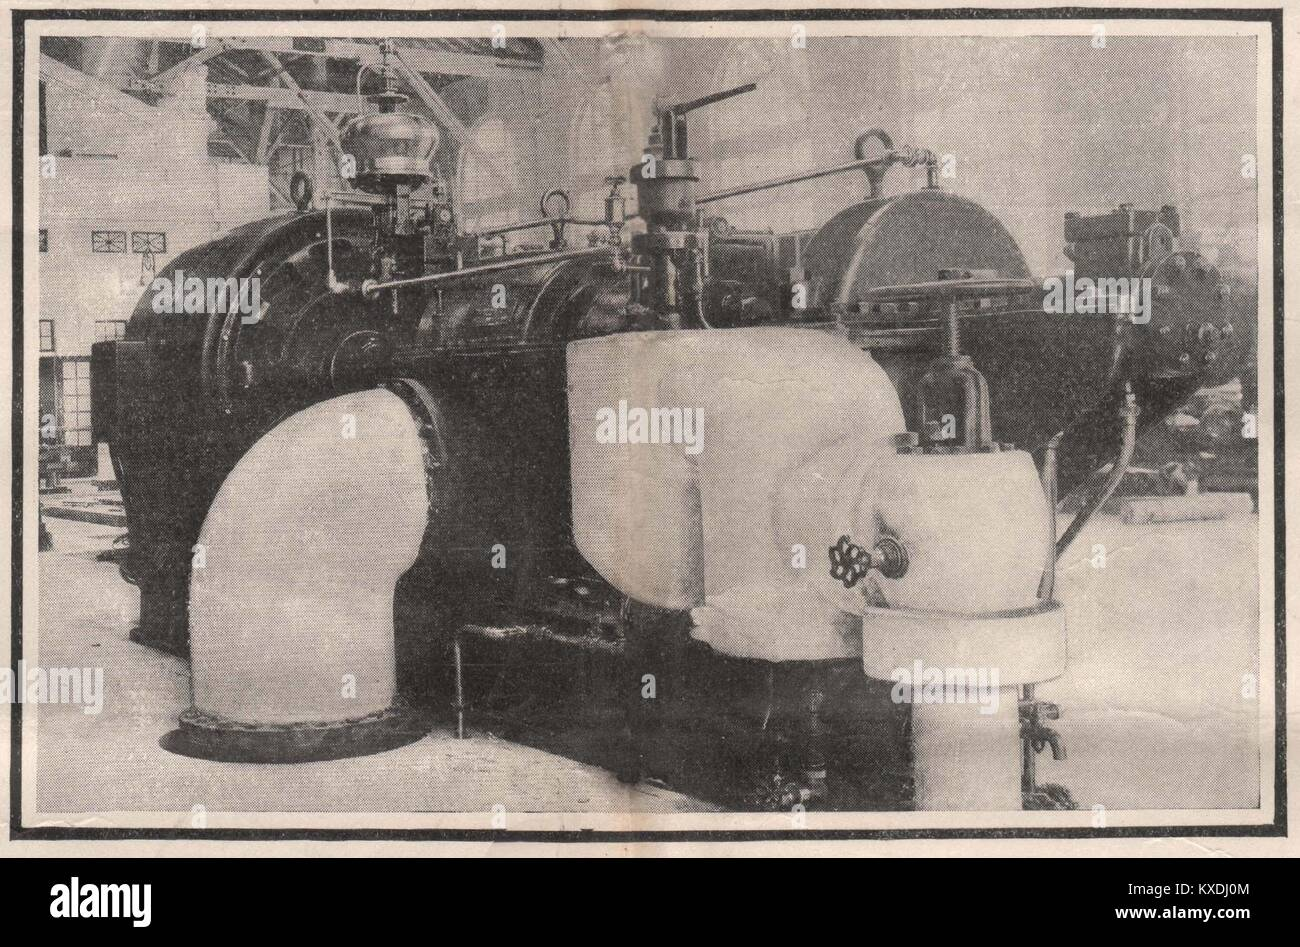 Parsons Turbine in the Machinery building connected to 400-K.W. Generator. Speed 3,600 revolutions per minute - Stock Image